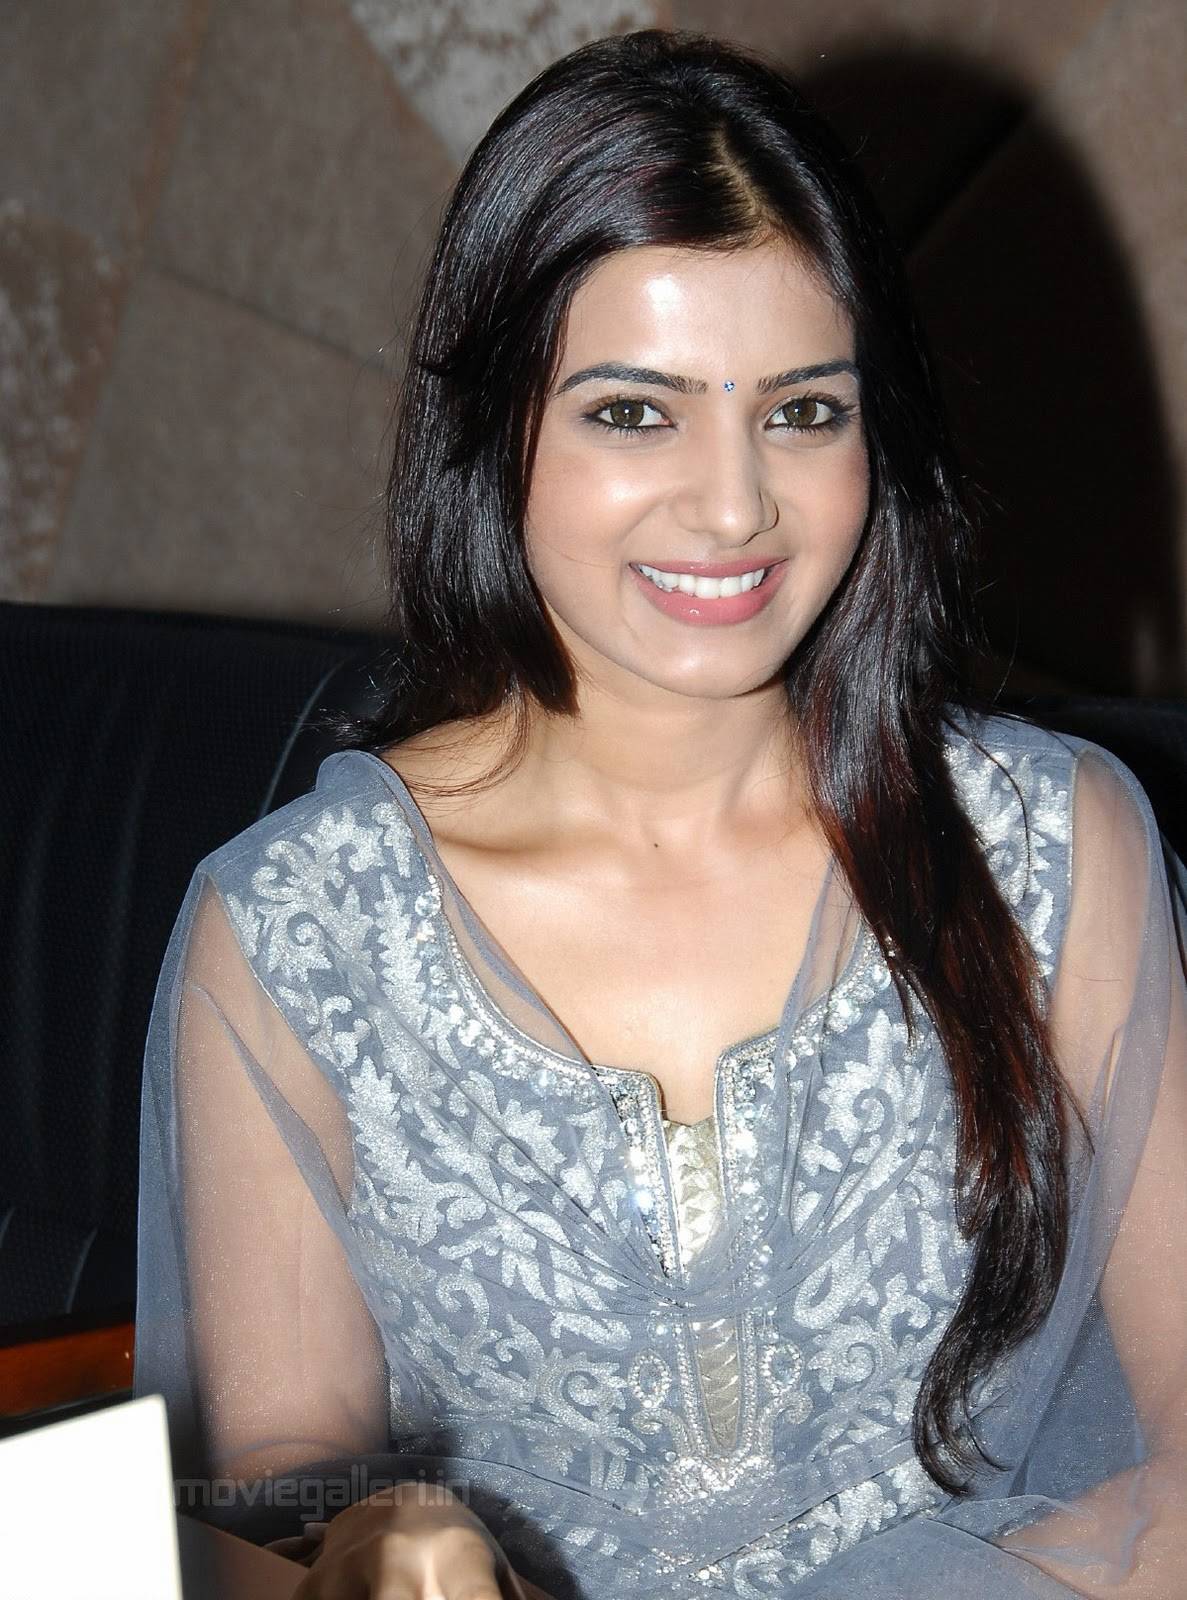 Samantha Cute Smile Pictures Samantha Cute Smile Photos